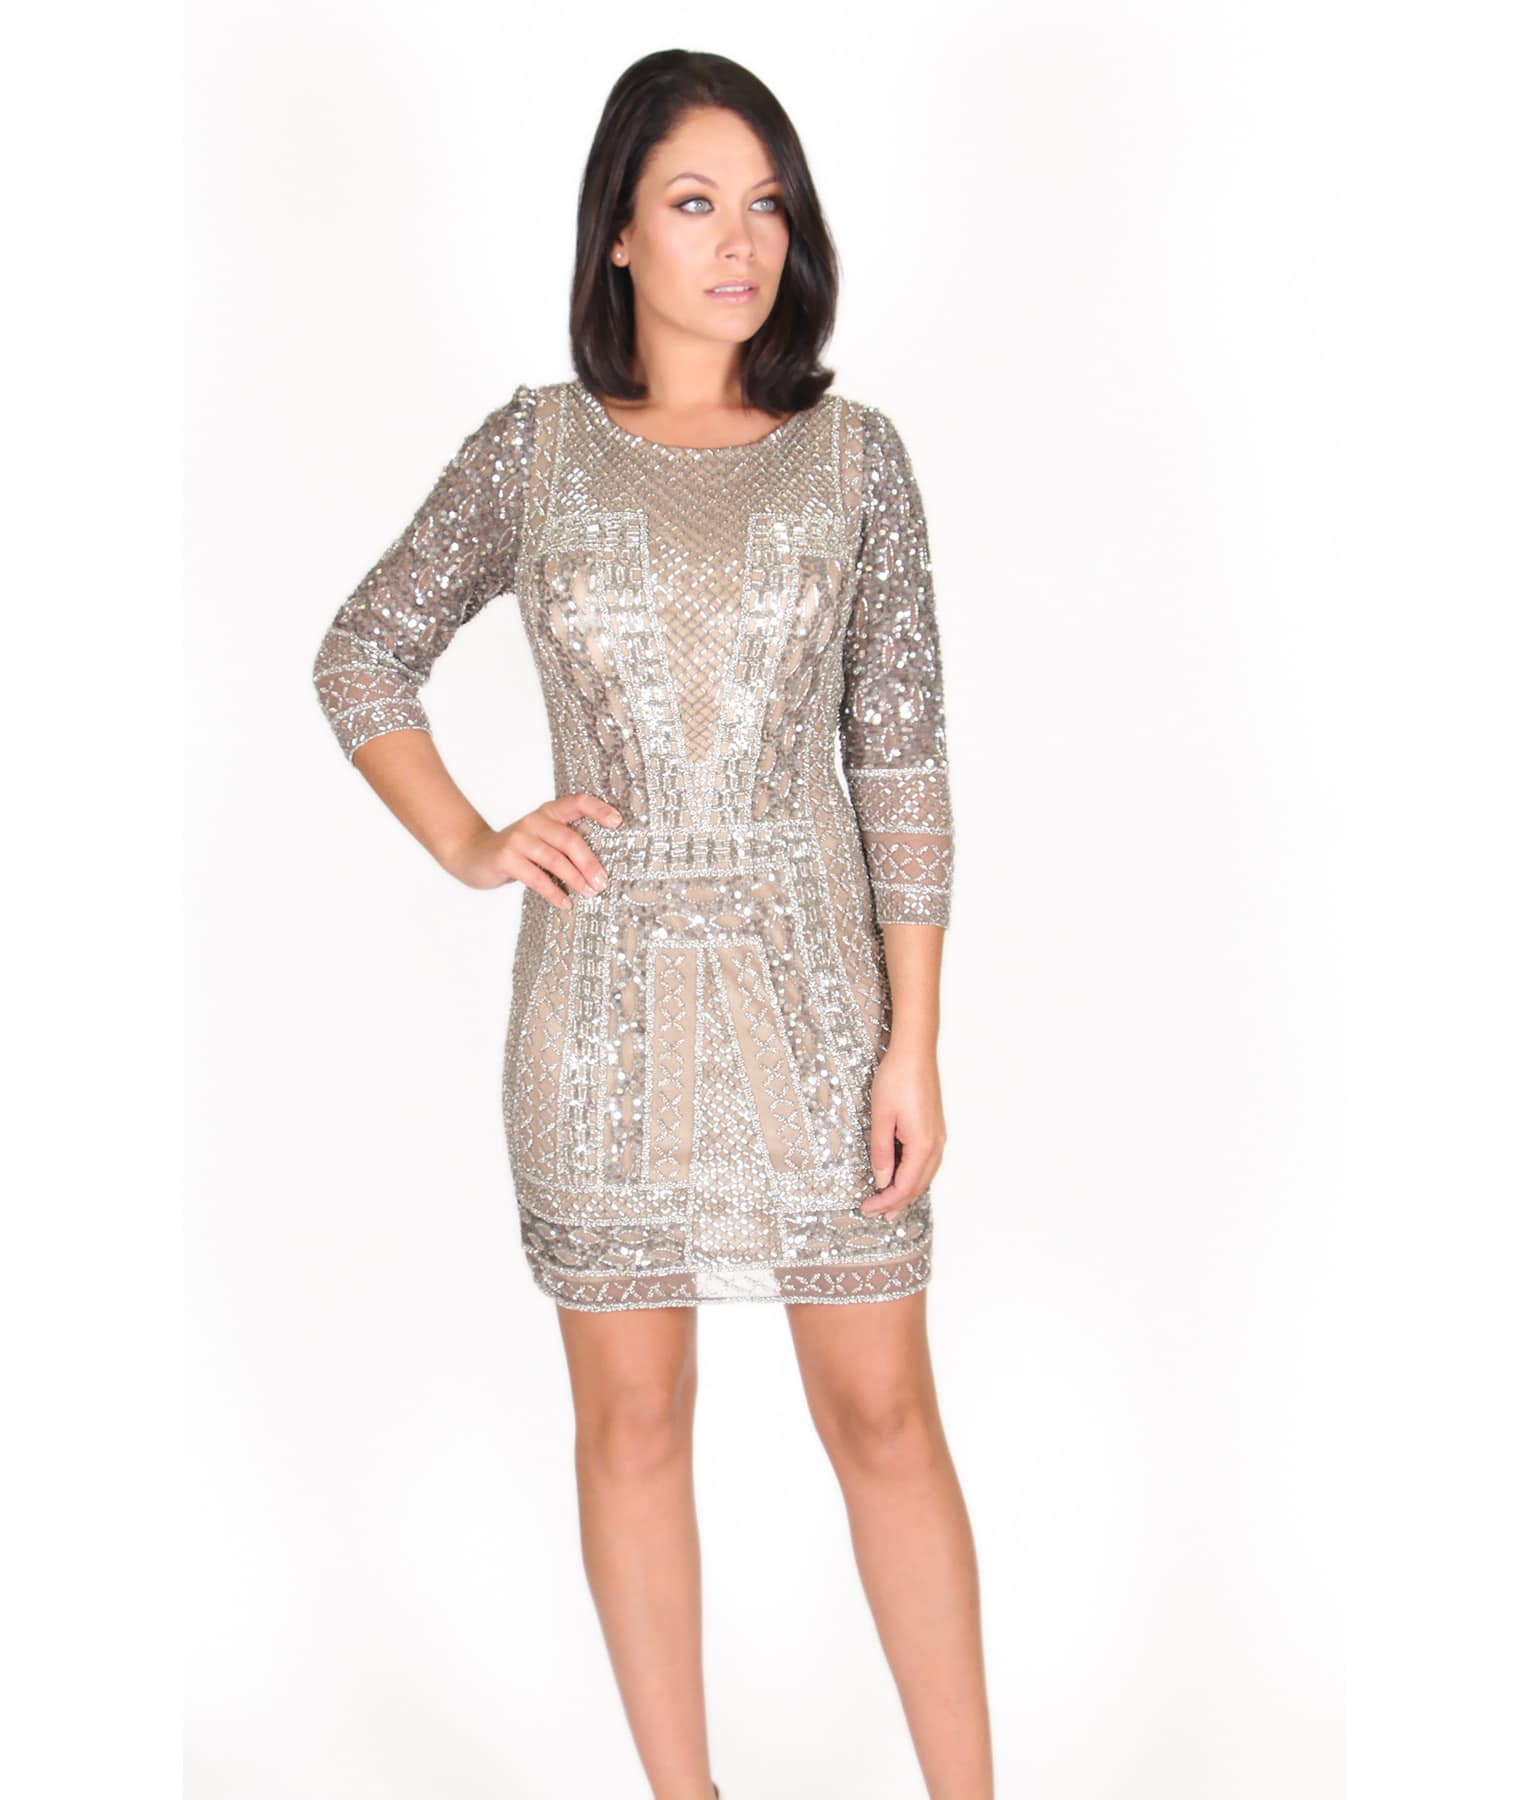 992cd046179f Scala Long Sleeve Embellished Dress - Alila